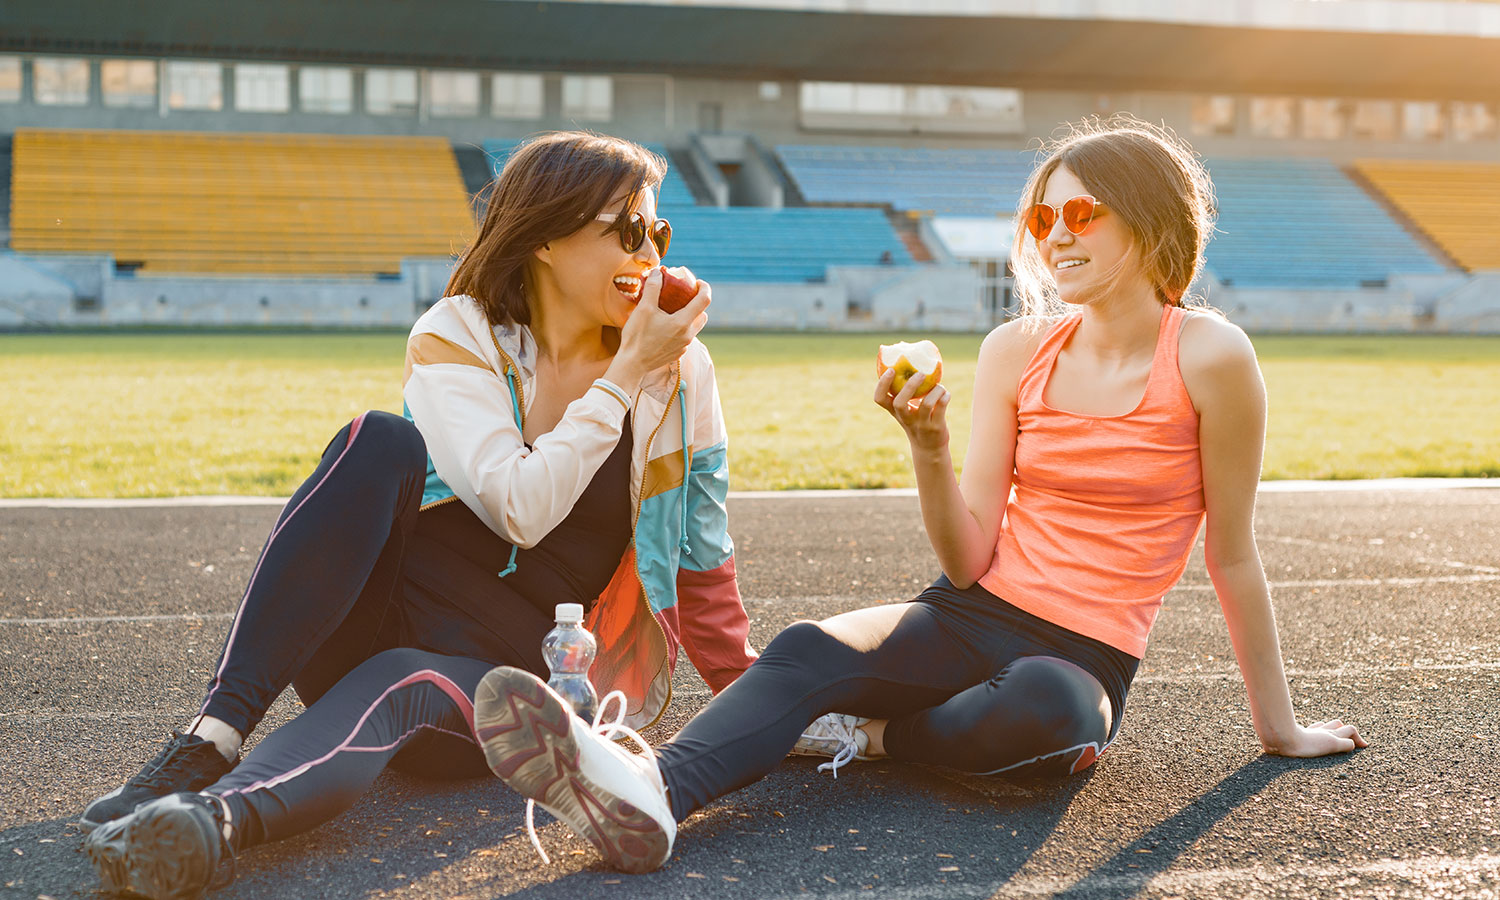 Women eating after exercise